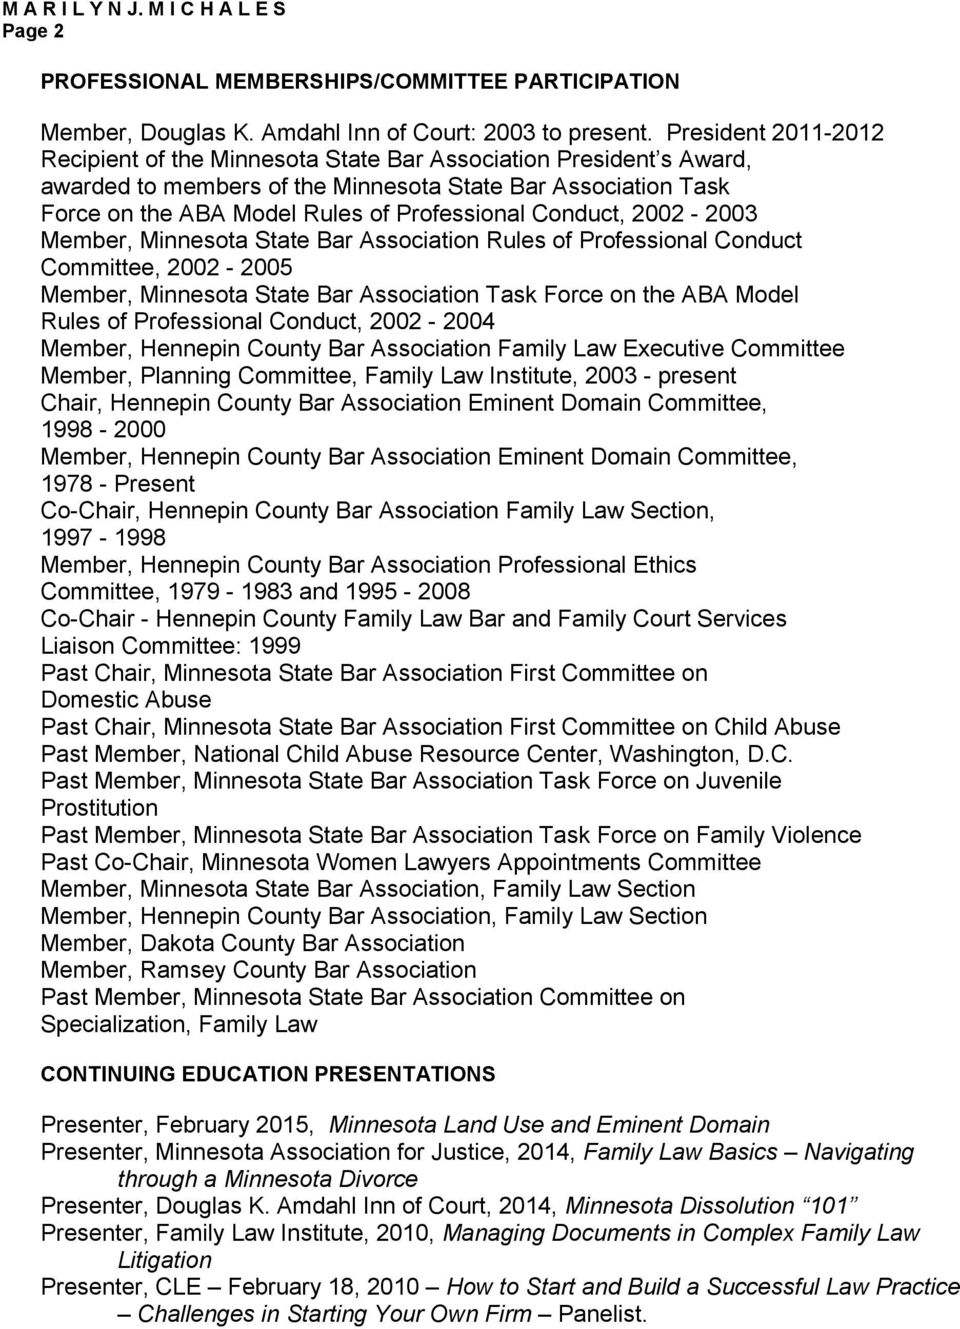 Conduct, 2002-2003 Member, Minnesota State Bar Association Rules of Professional Conduct Committee, 2002-2005 Member, Minnesota State Bar Association Task Force on the ABA Model Rules of Professional